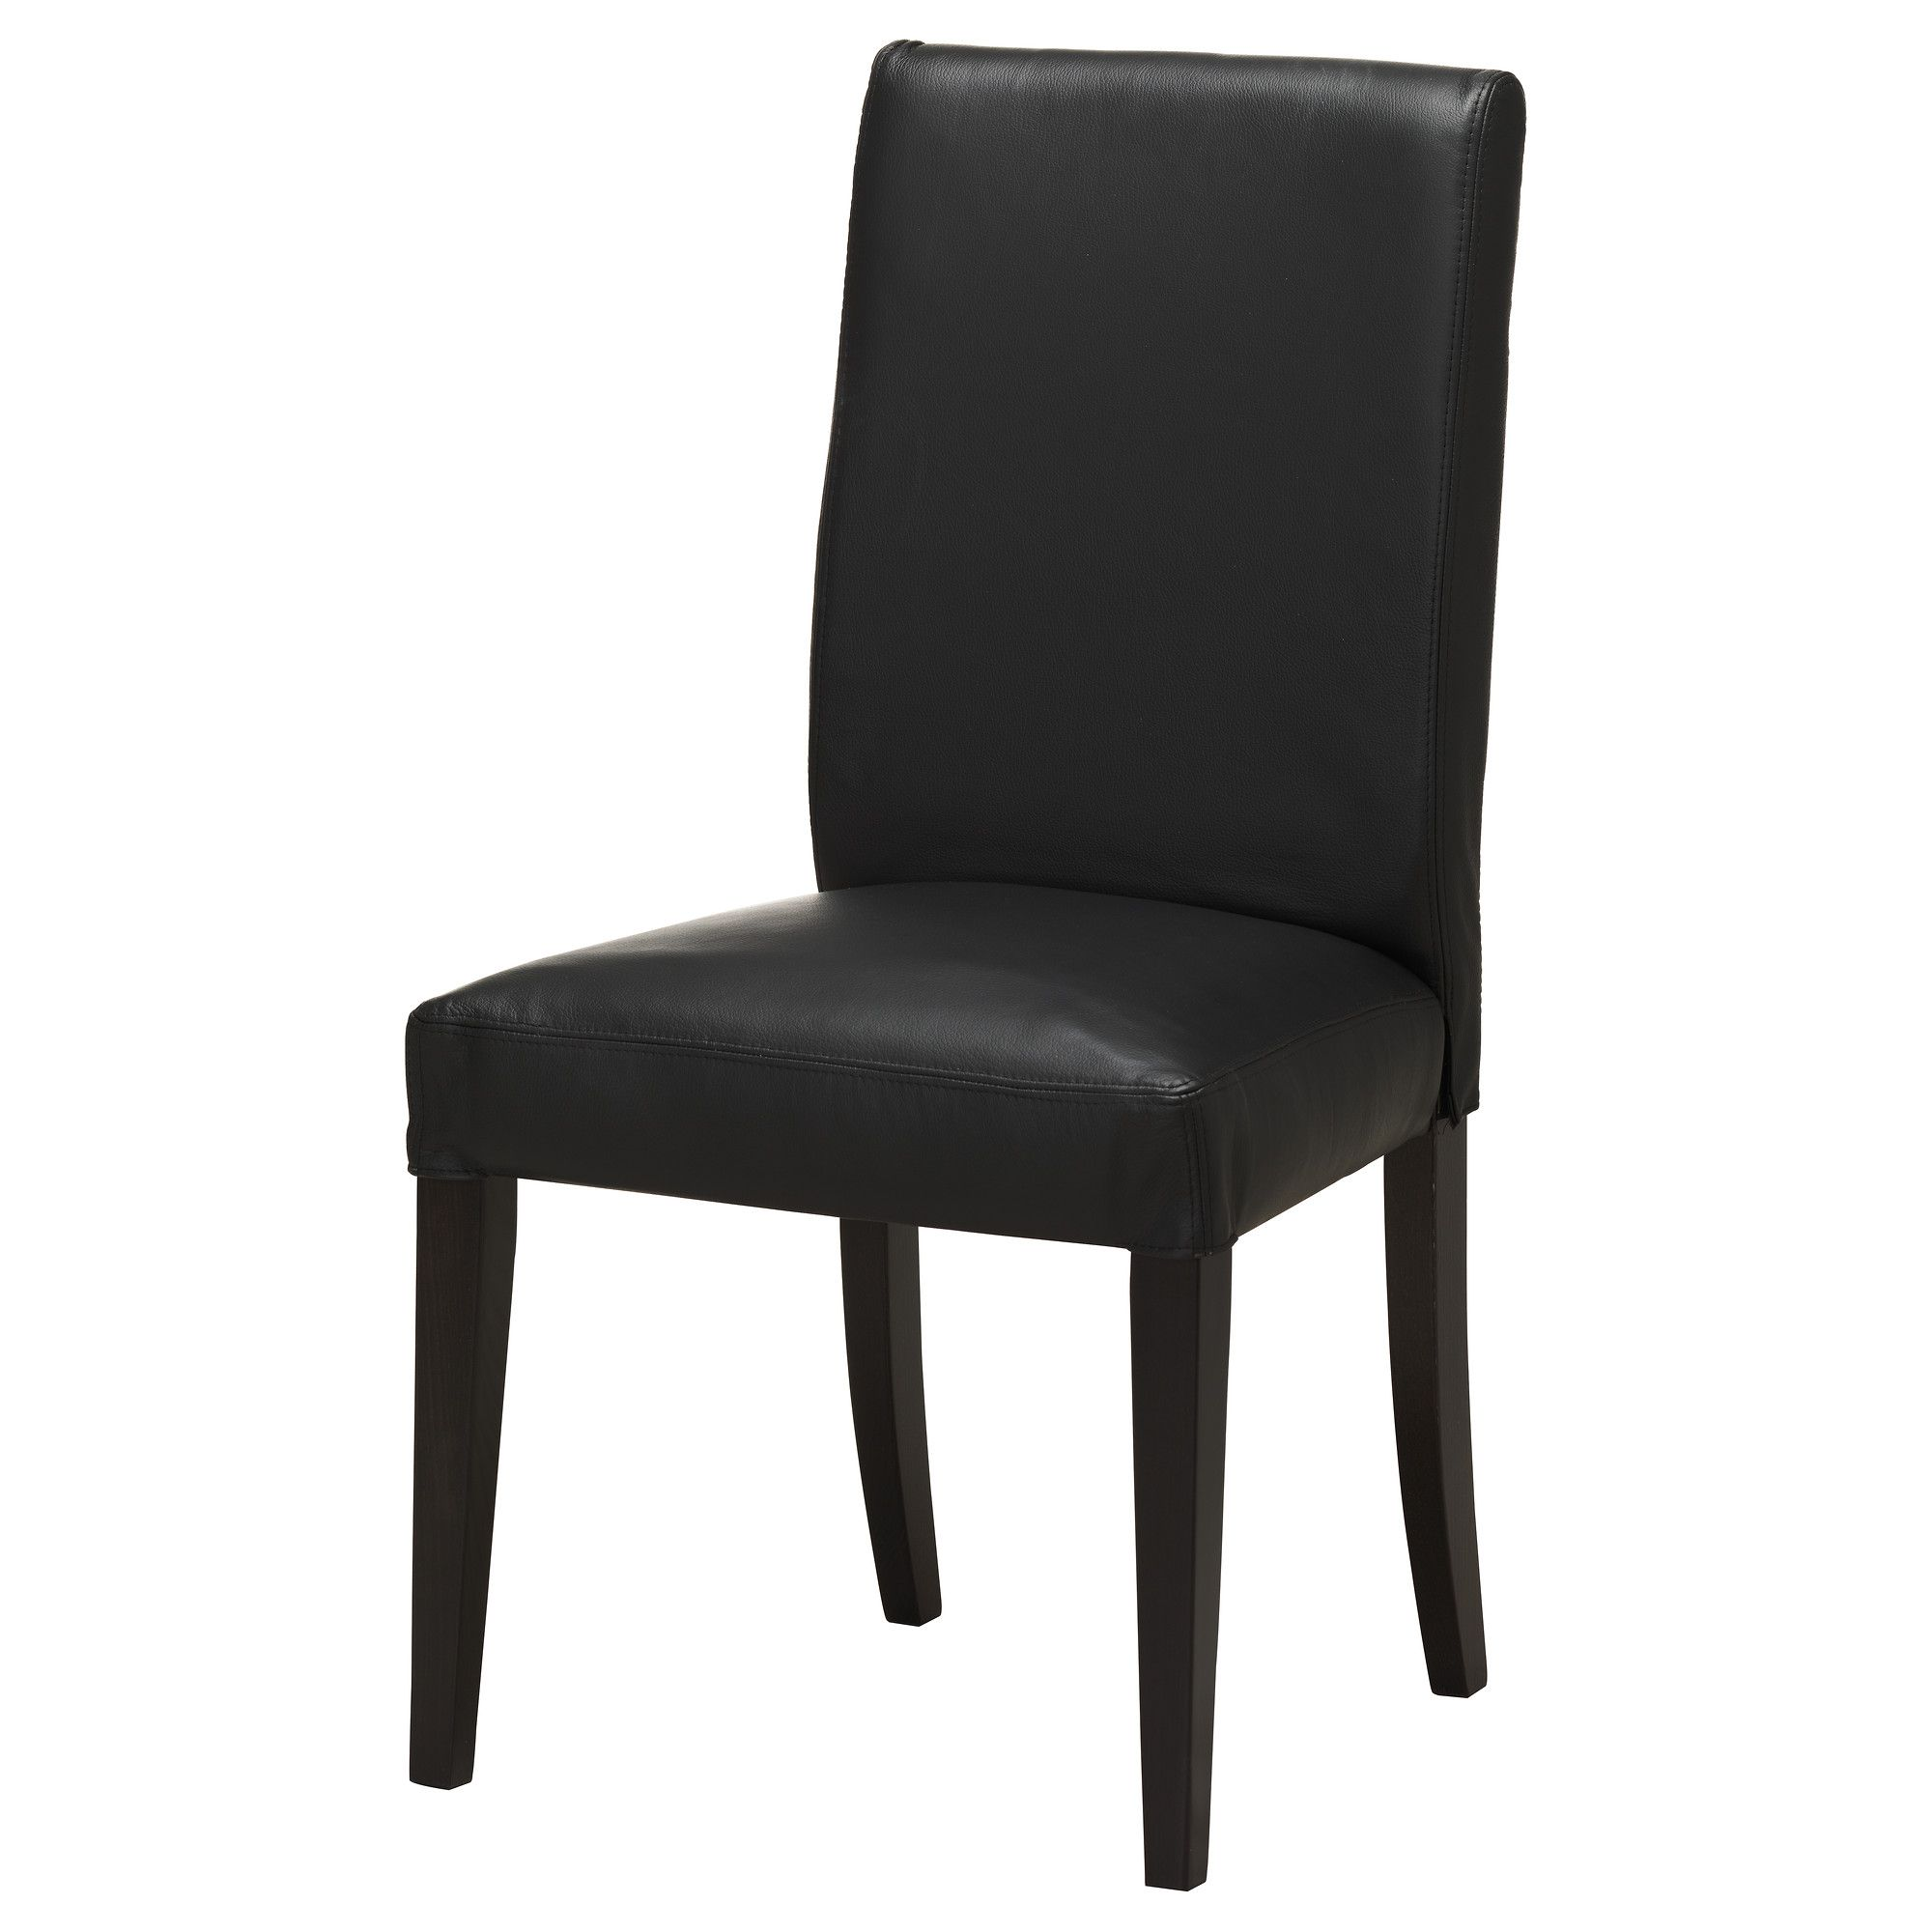 Furniture Home Furnishings Find Your Inspiration Leather Dining Chairs Ikea Dining Chair Ikea Leather Chair